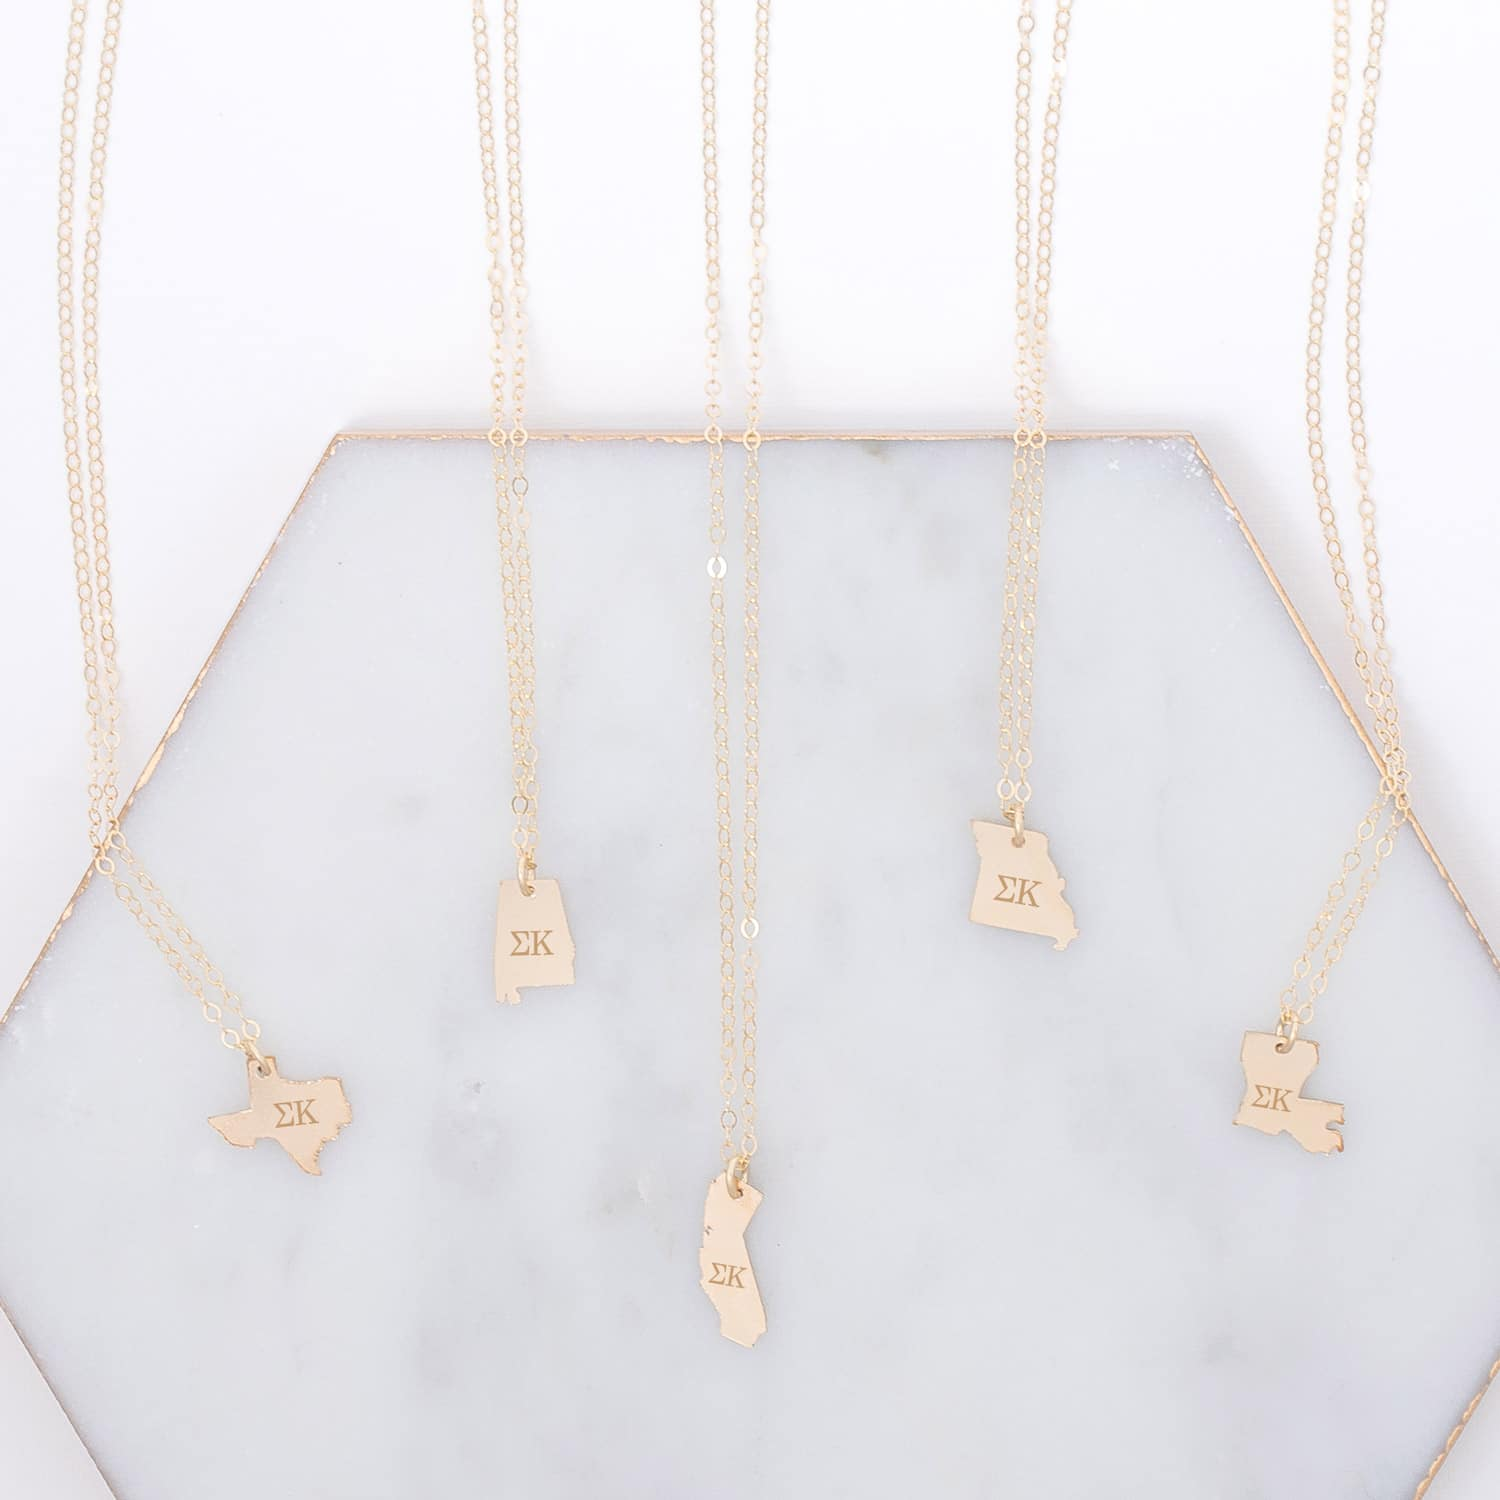 sigma-kappa-state-necklace-gold-compilation-on-marble